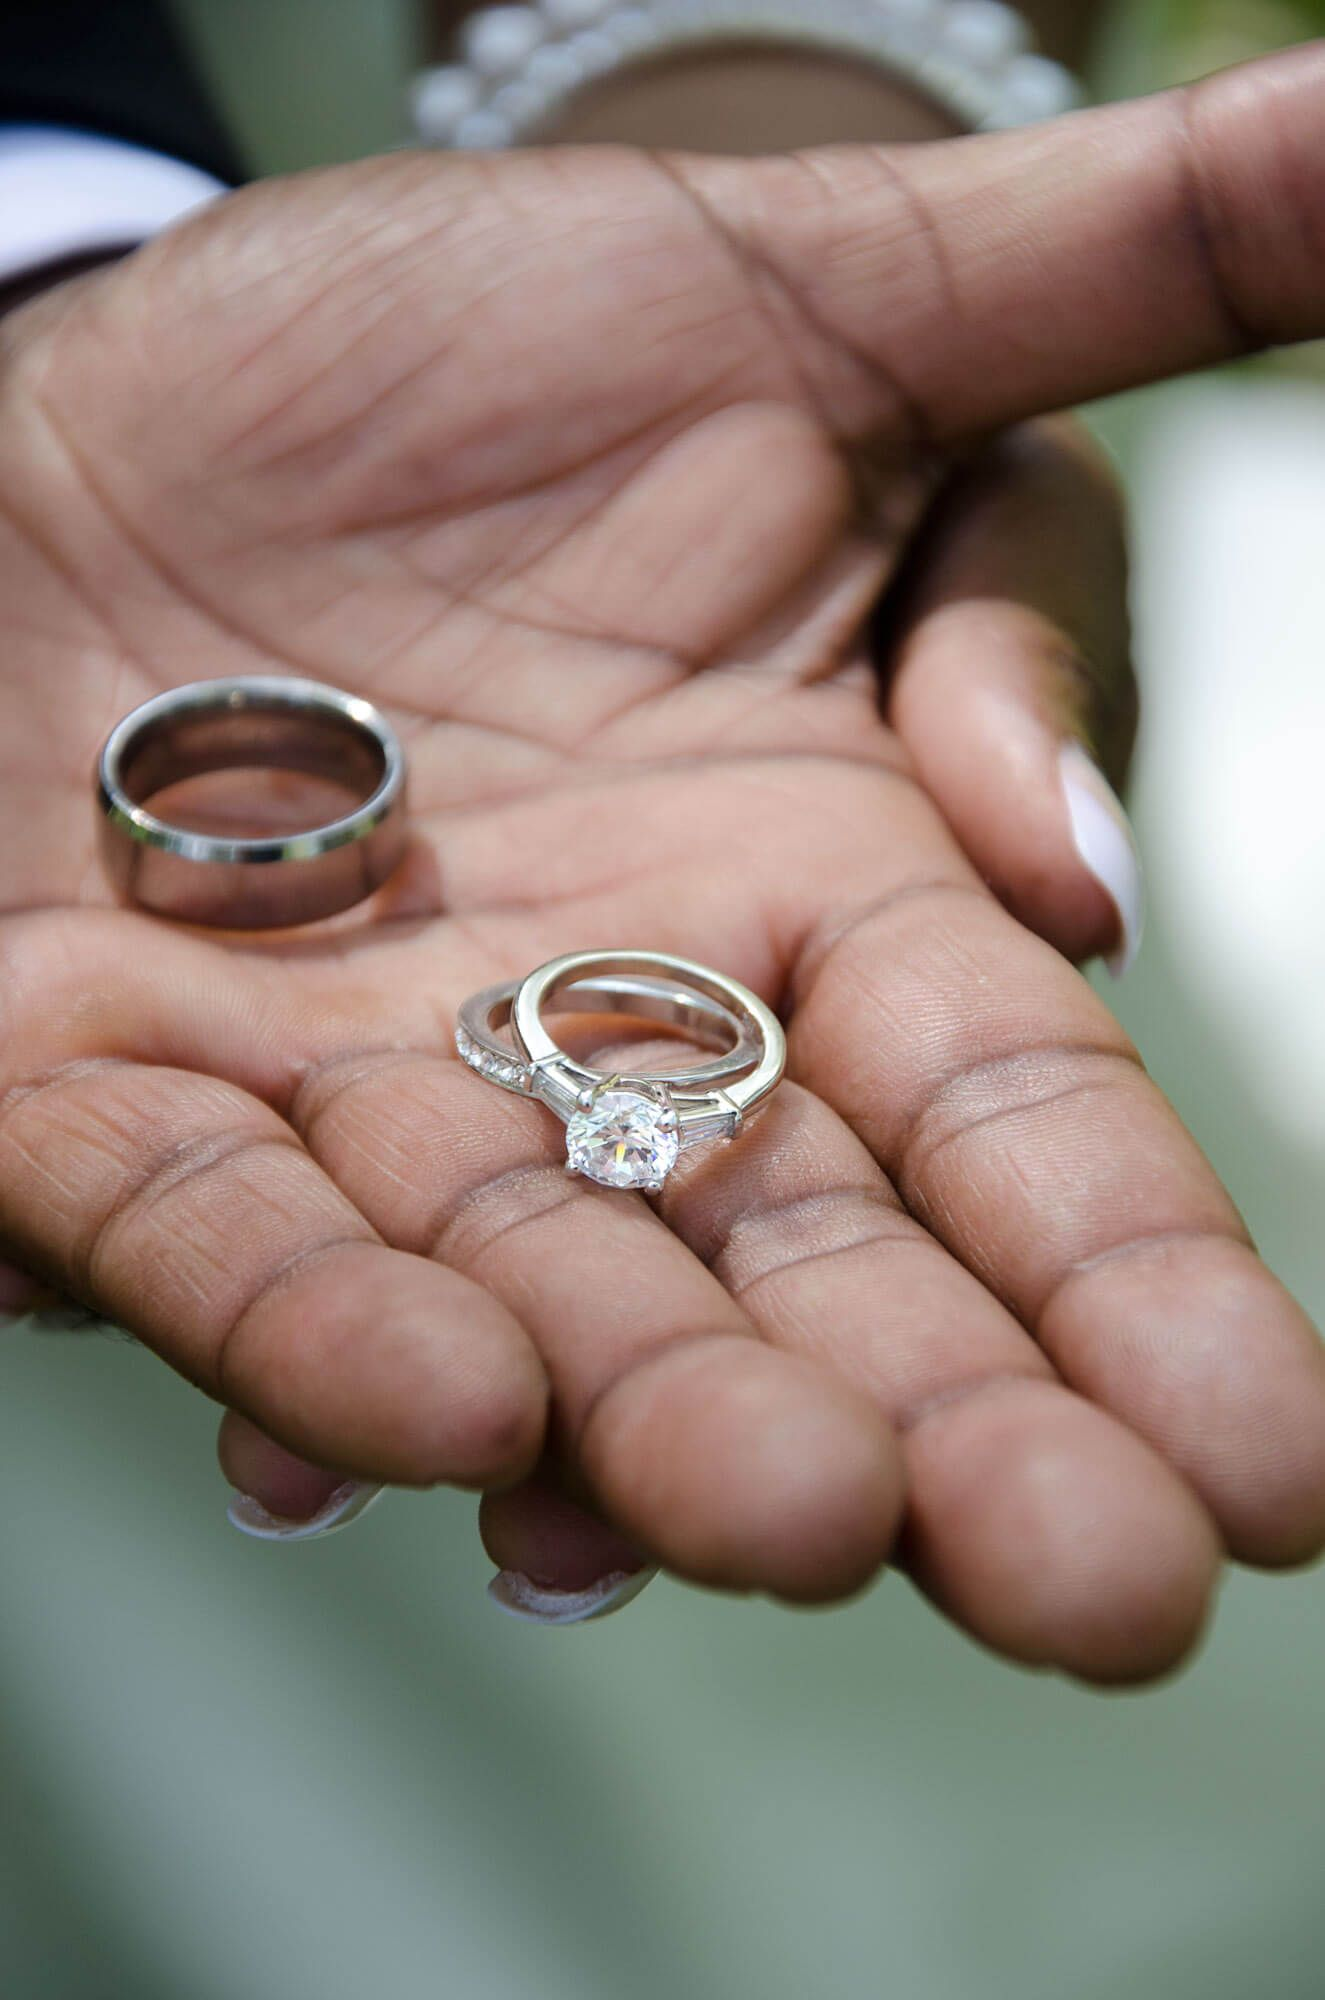 Wedding ring tradition | Jewelry rings | Pinterest | Ring and Wedding